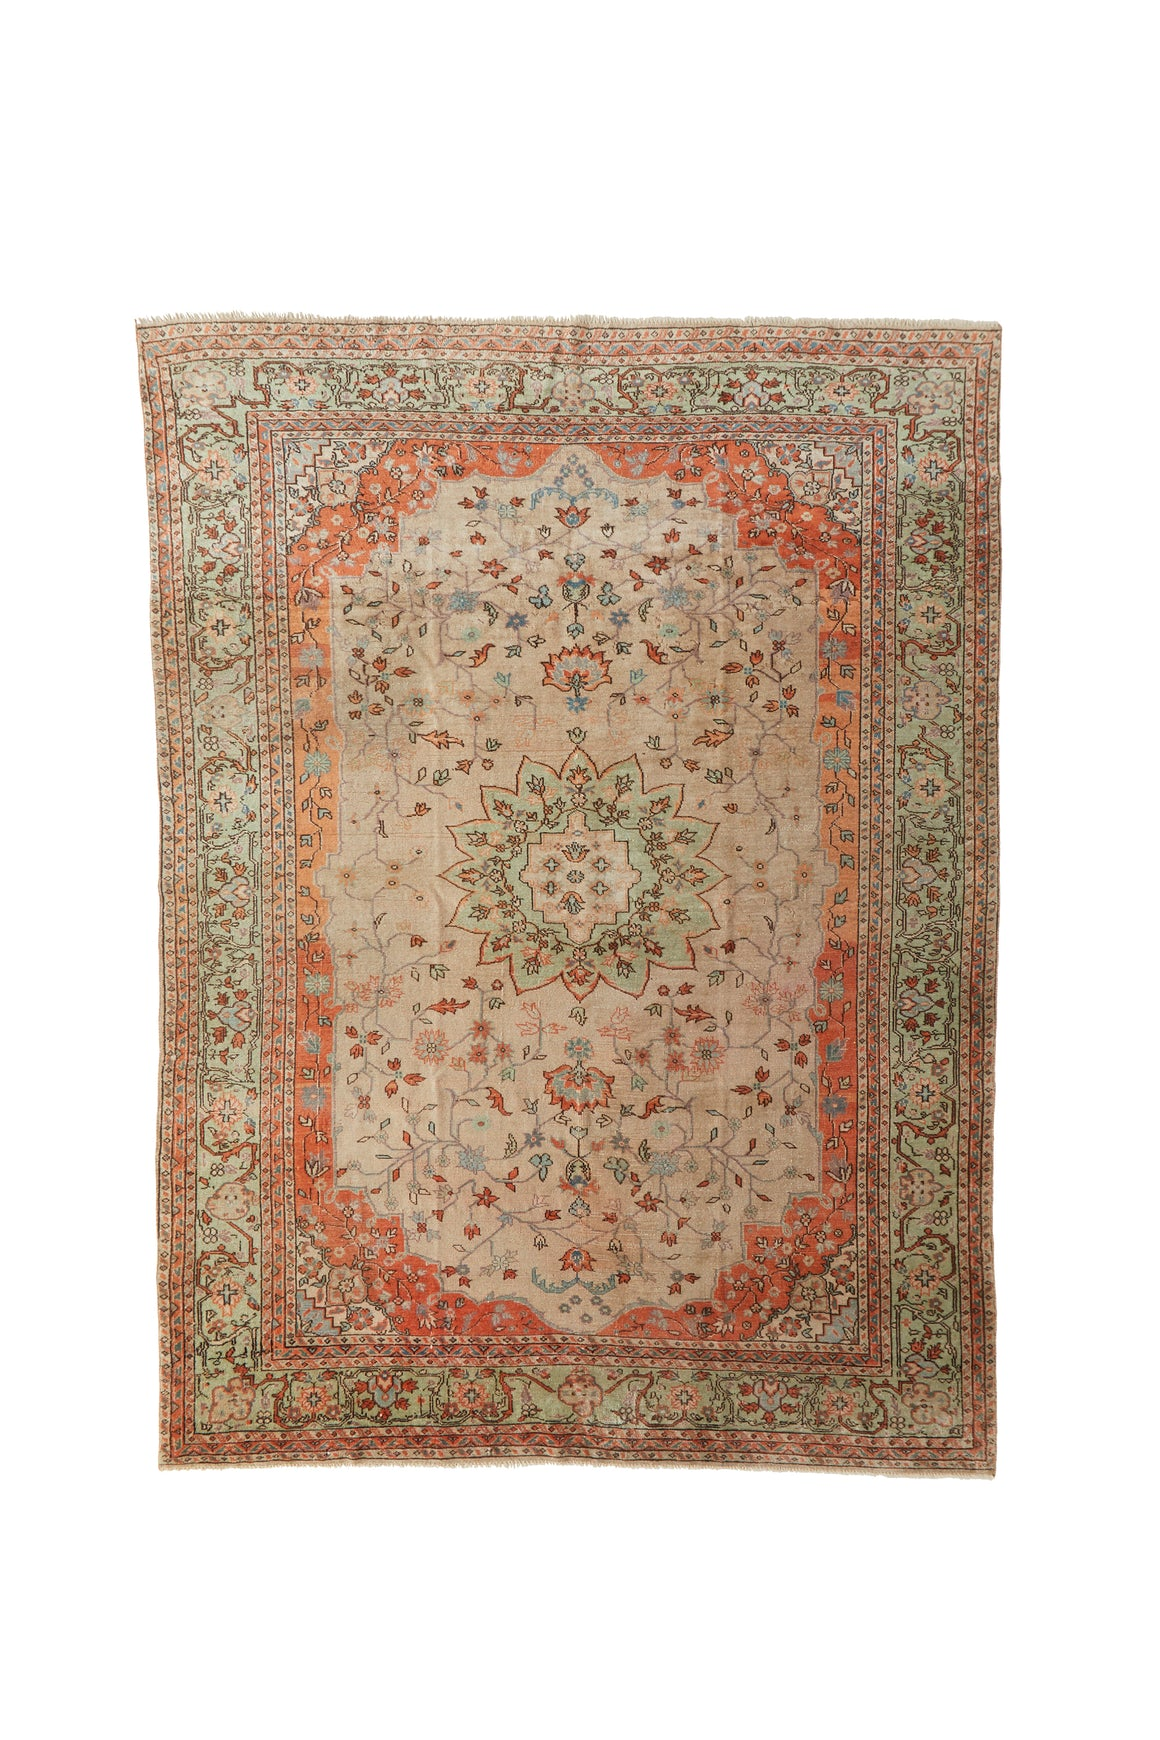 "'Chrysanthemum' Vintage Persian Rug - 6'5"" x 8'8"" - Canary Lane - Curated Textiles"